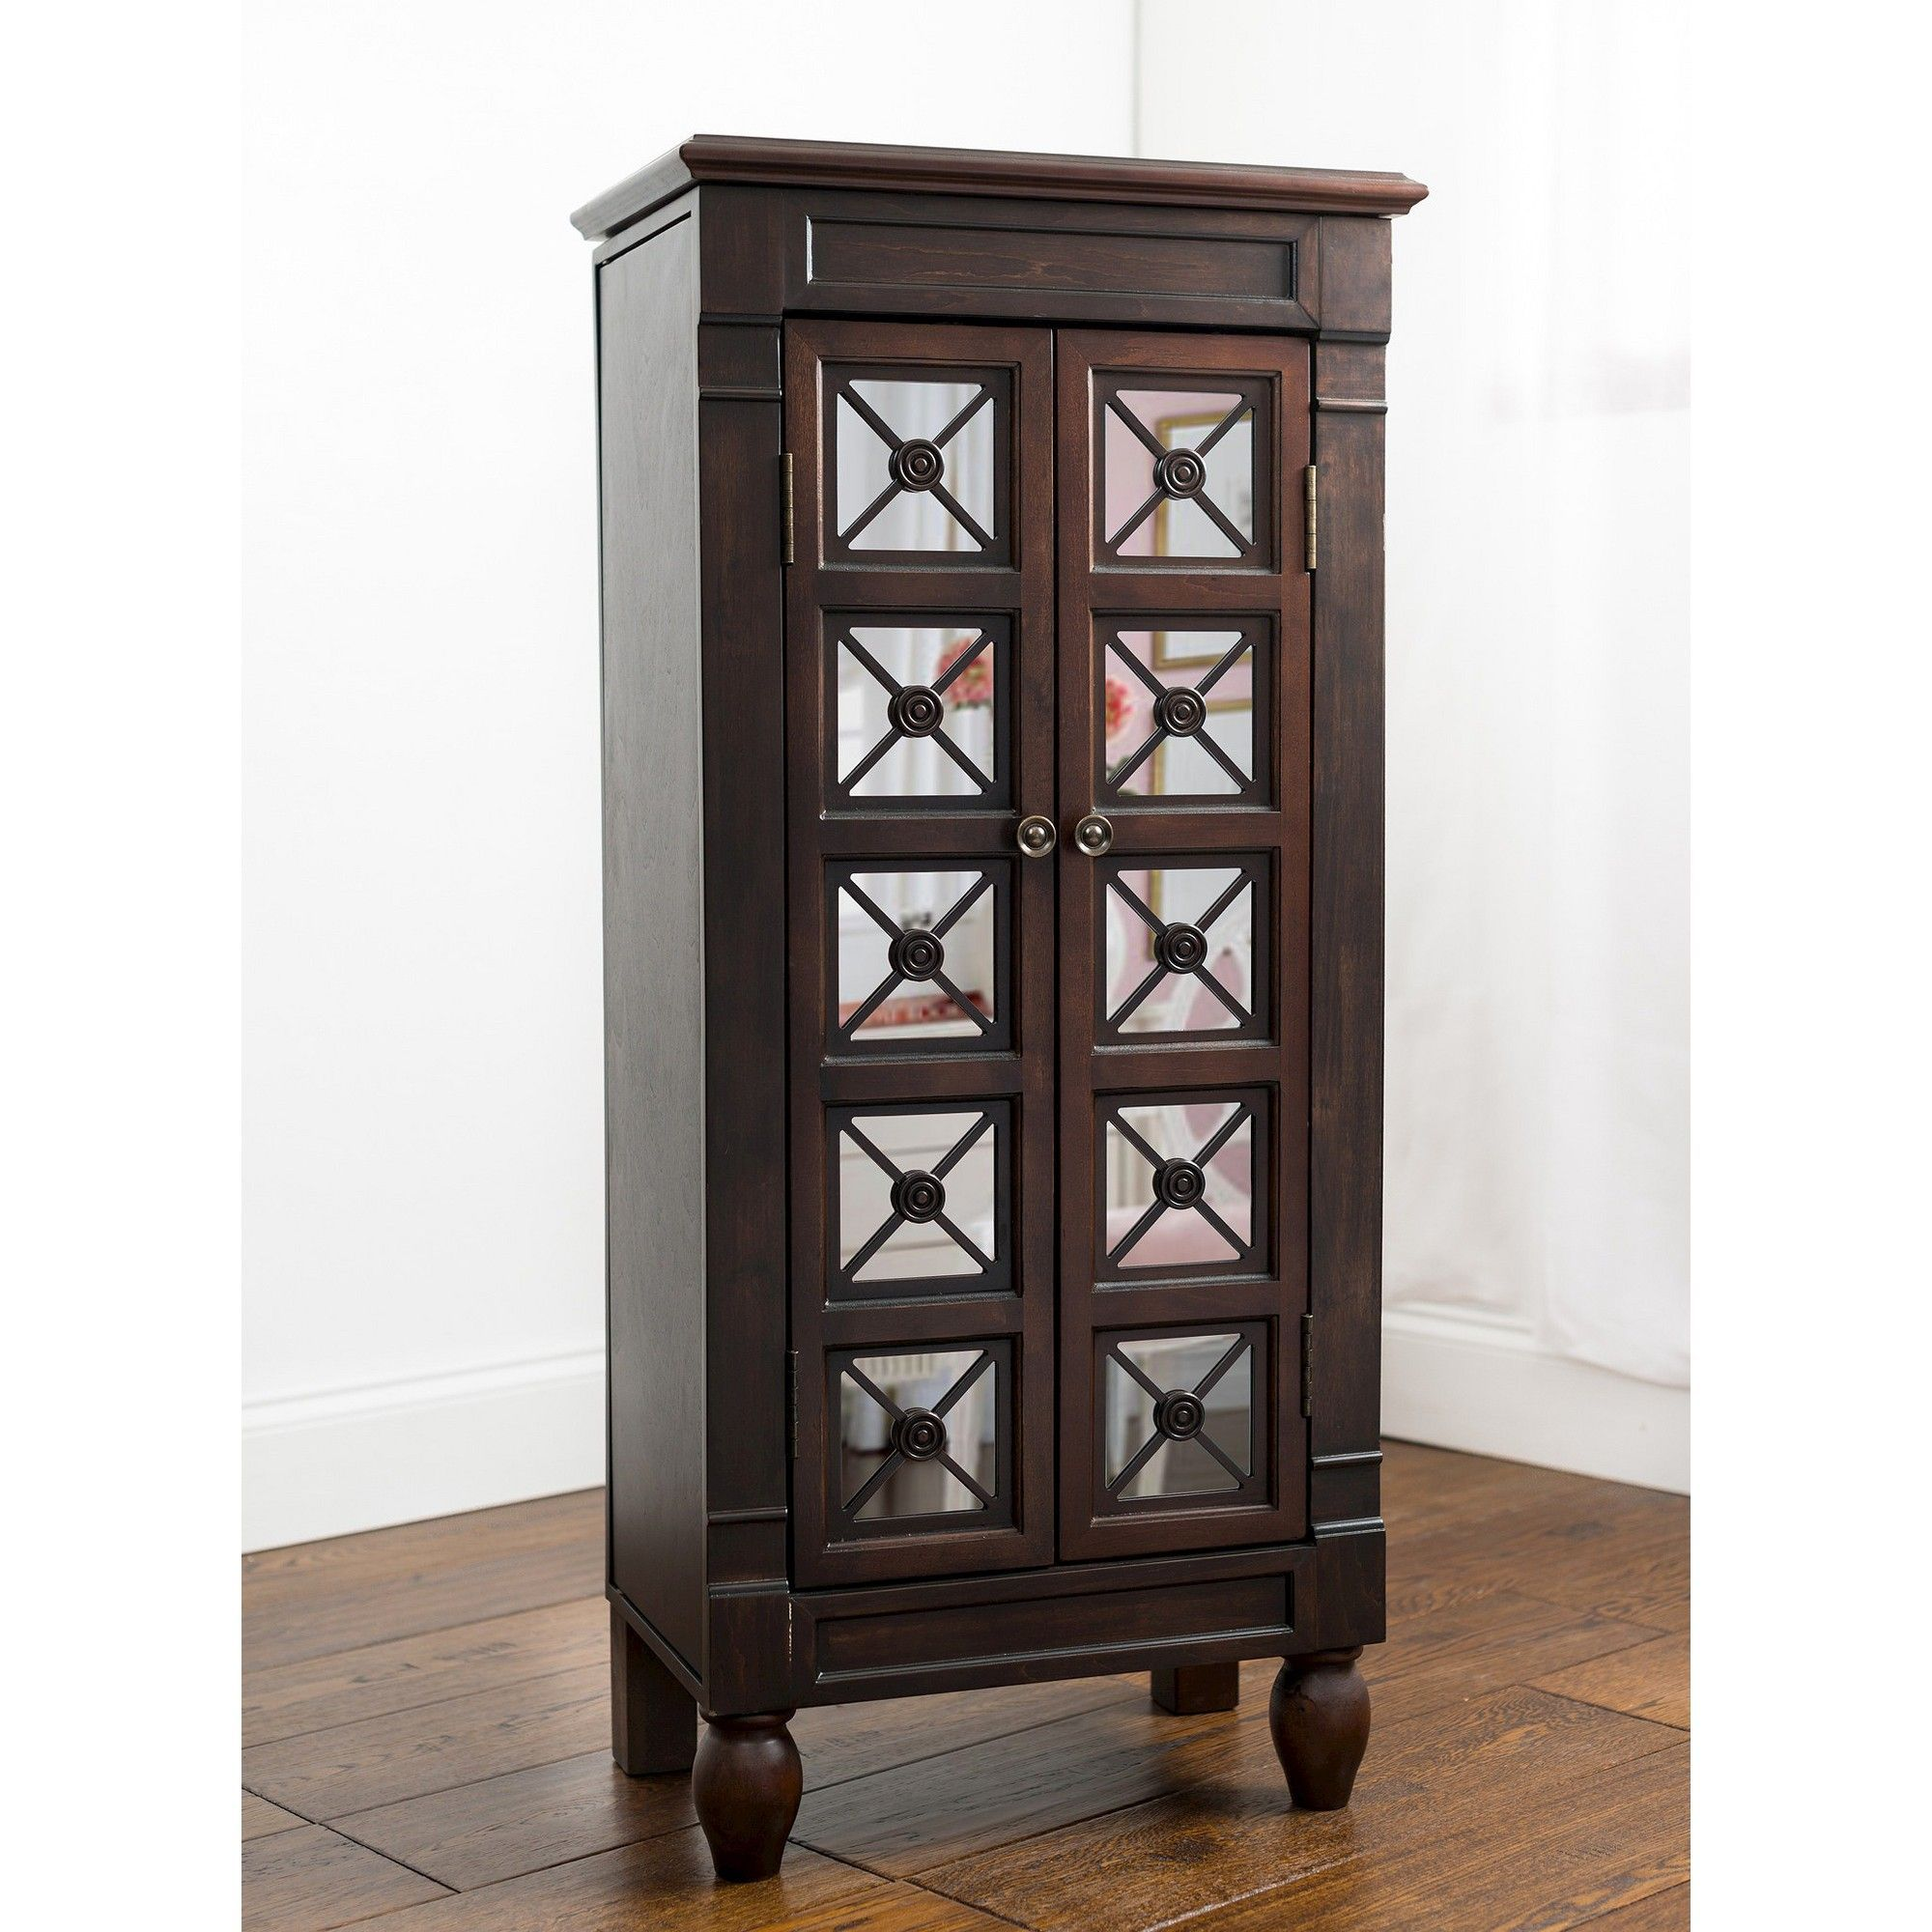 door furniture wall cheval design hutch for jewelry the your over mount armoire organizer best storage mirror ideas